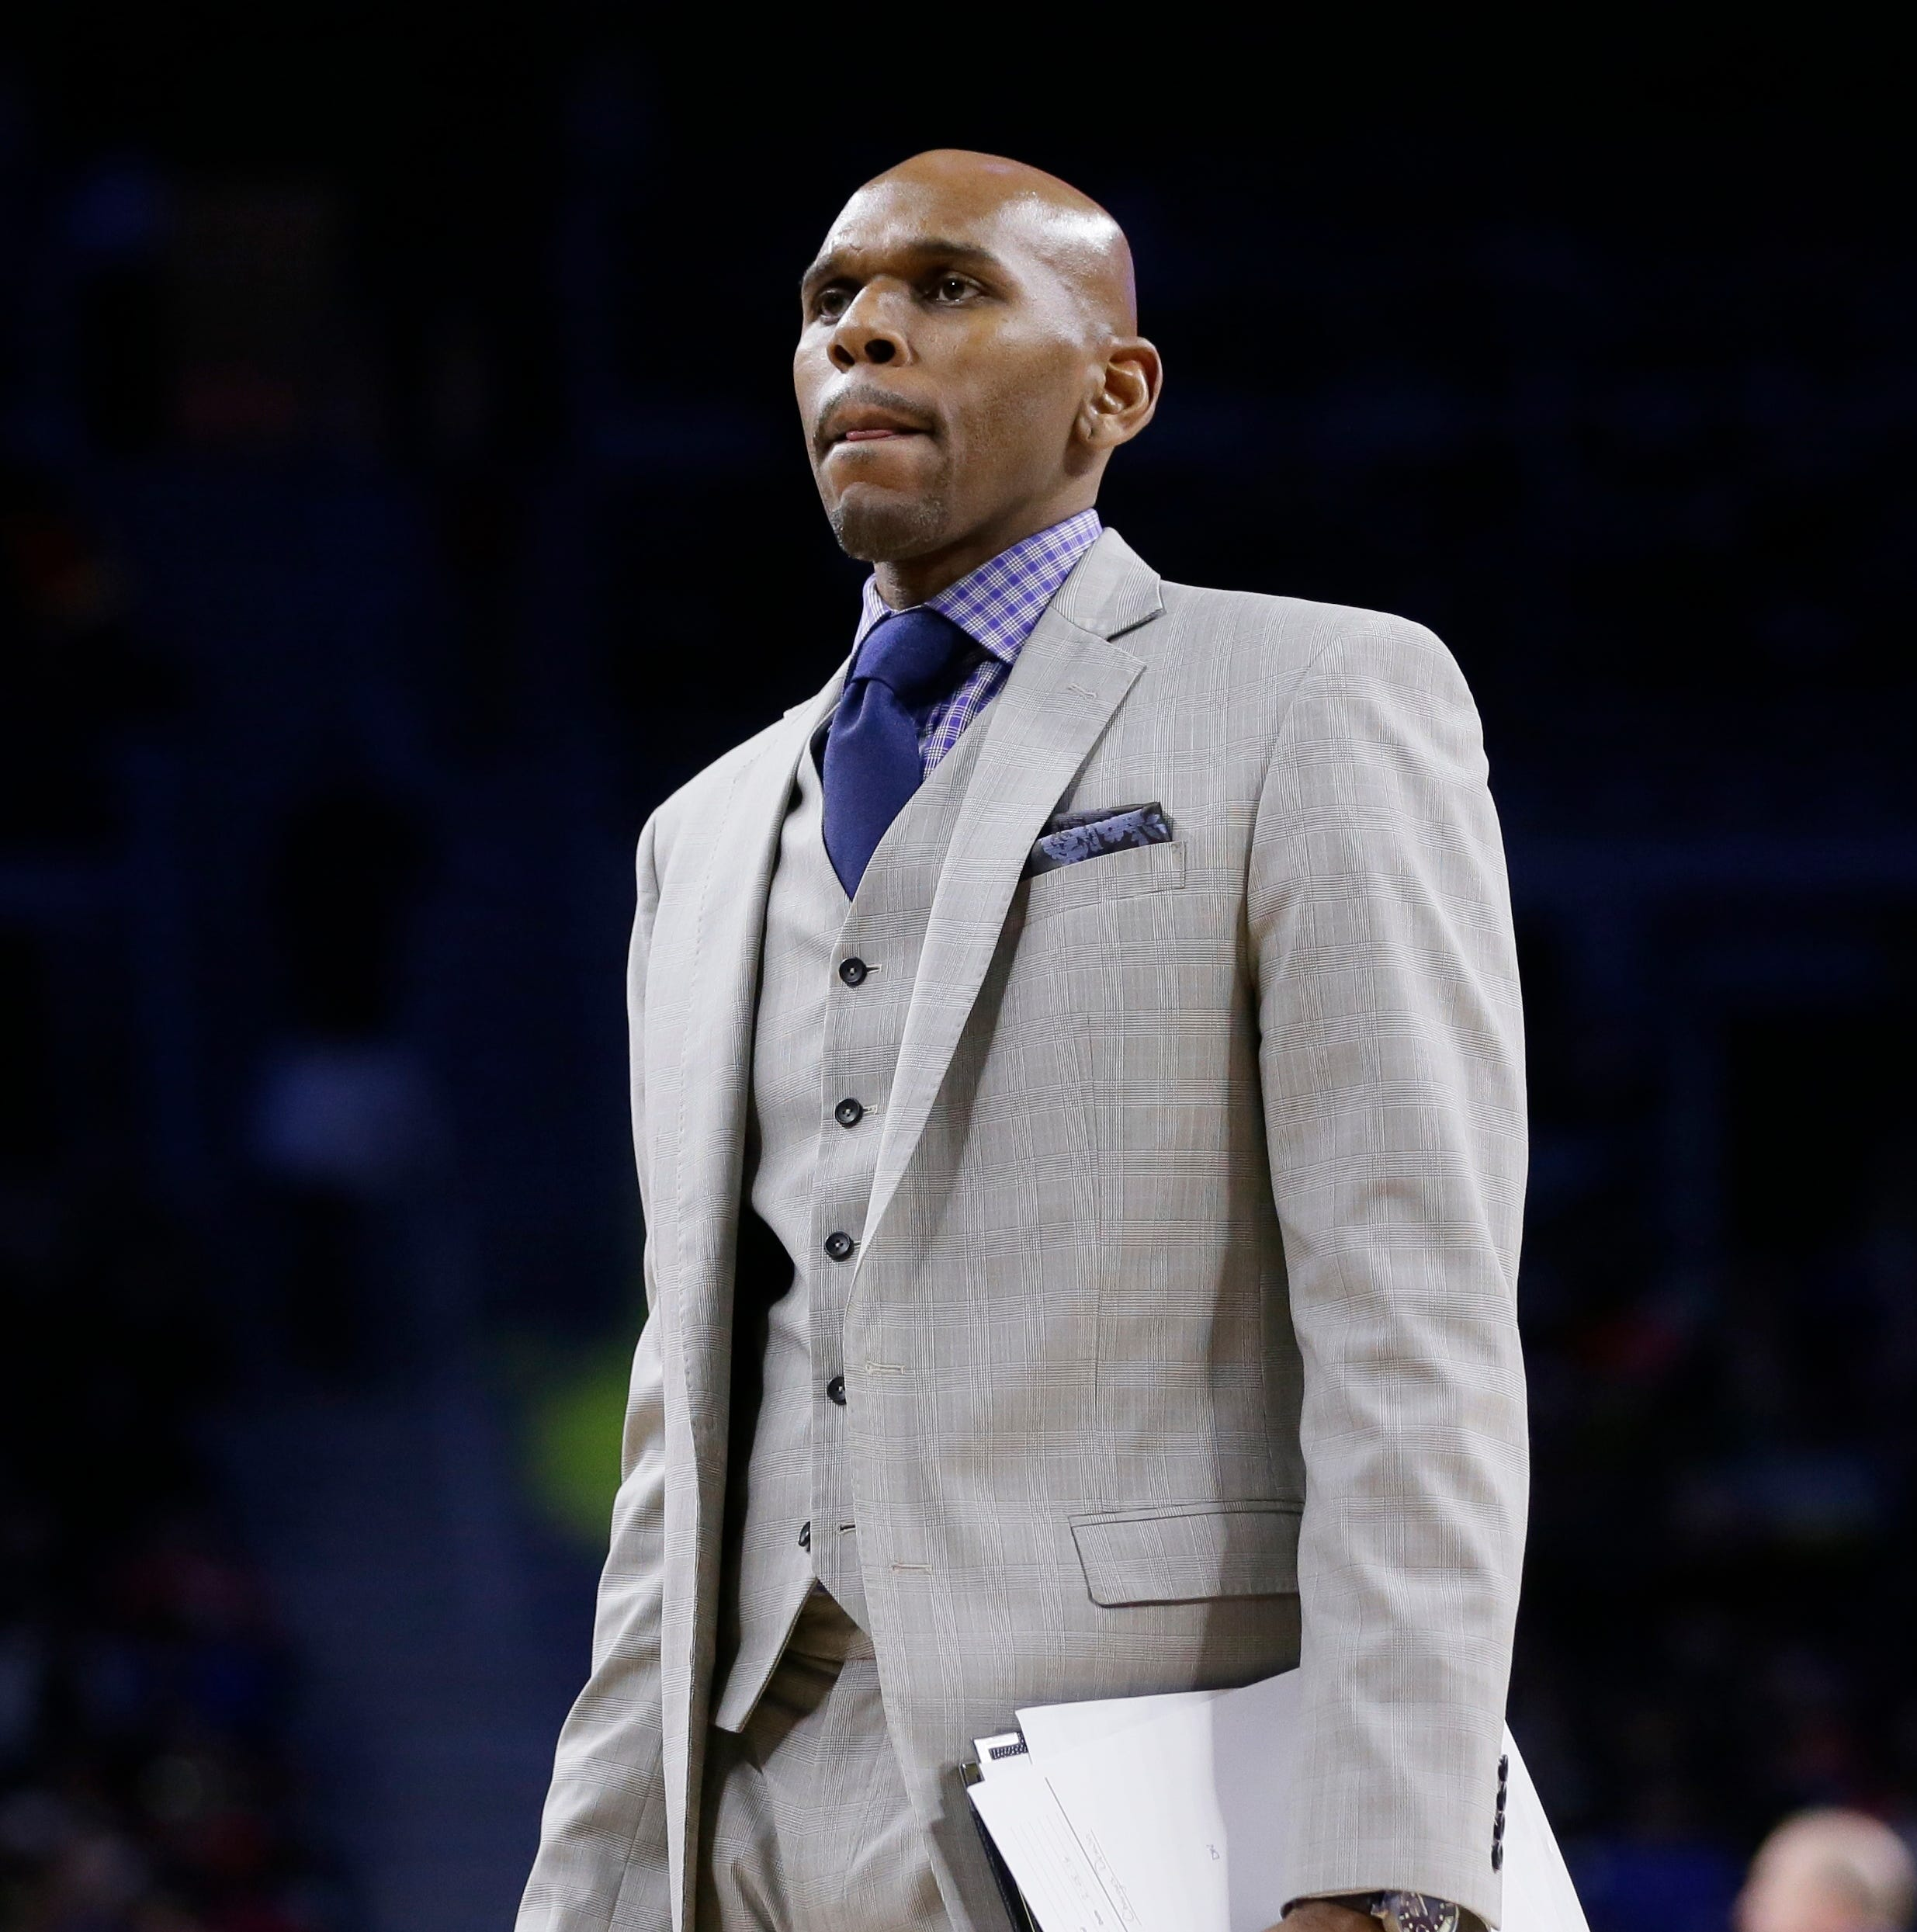 5 things to know about Vanderbilt coaching candidate Jerry Stackhouse